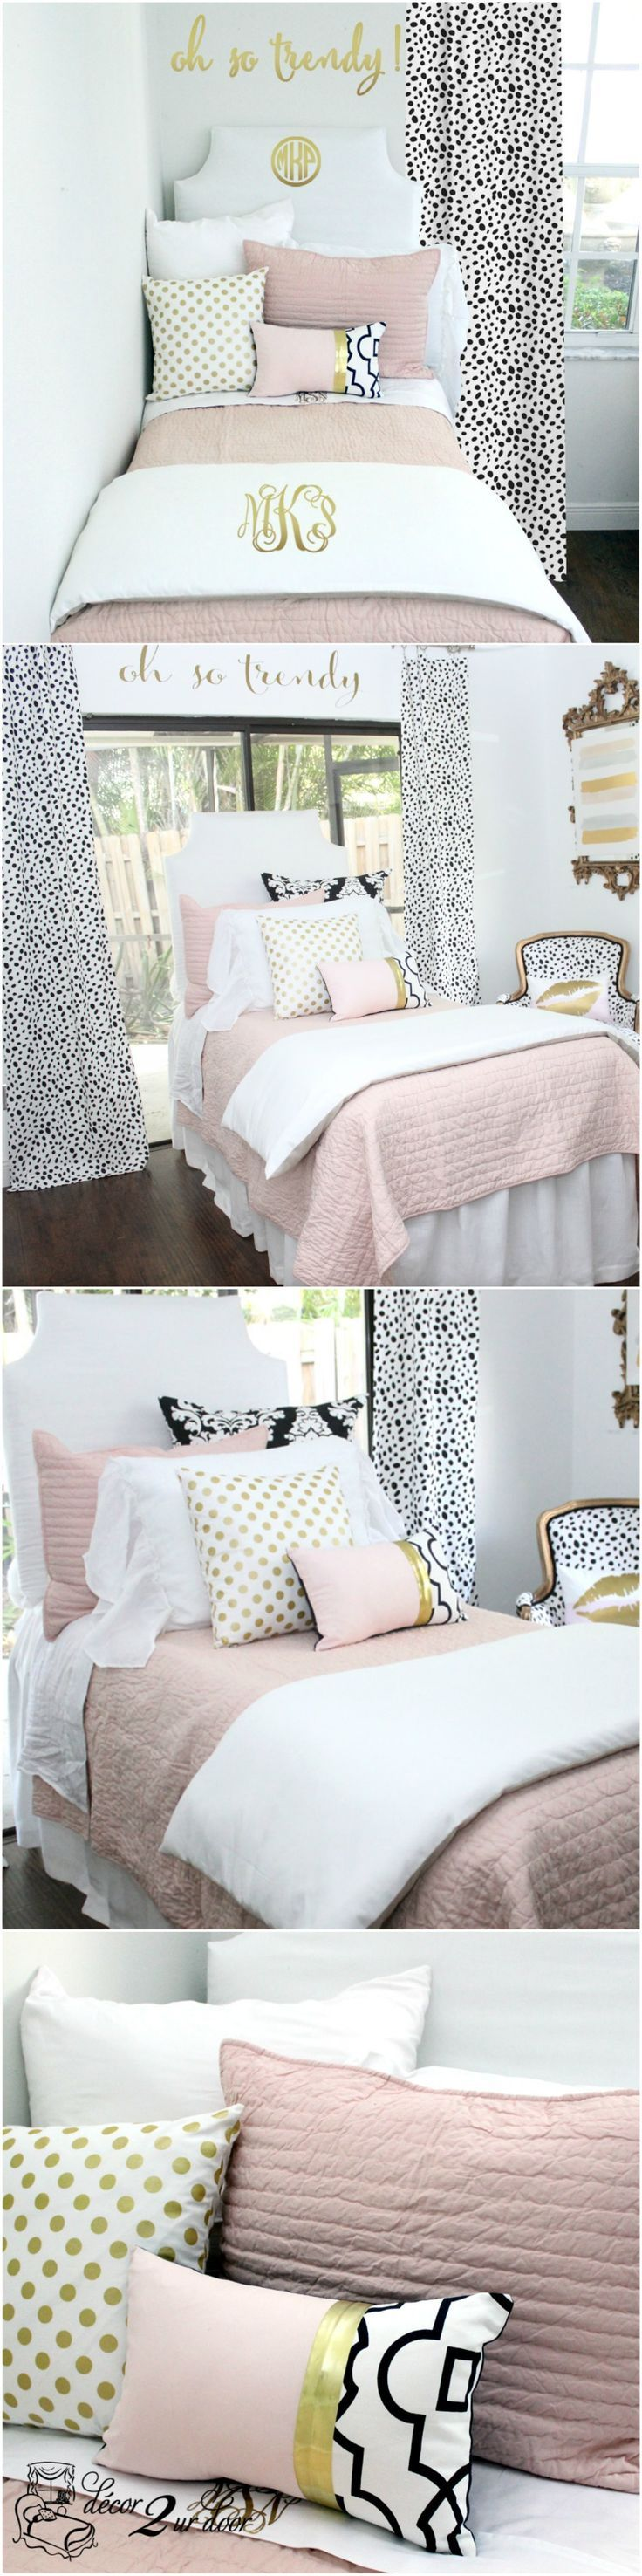 712 best Window Treatments images on Pinterest | Child room, Room ...